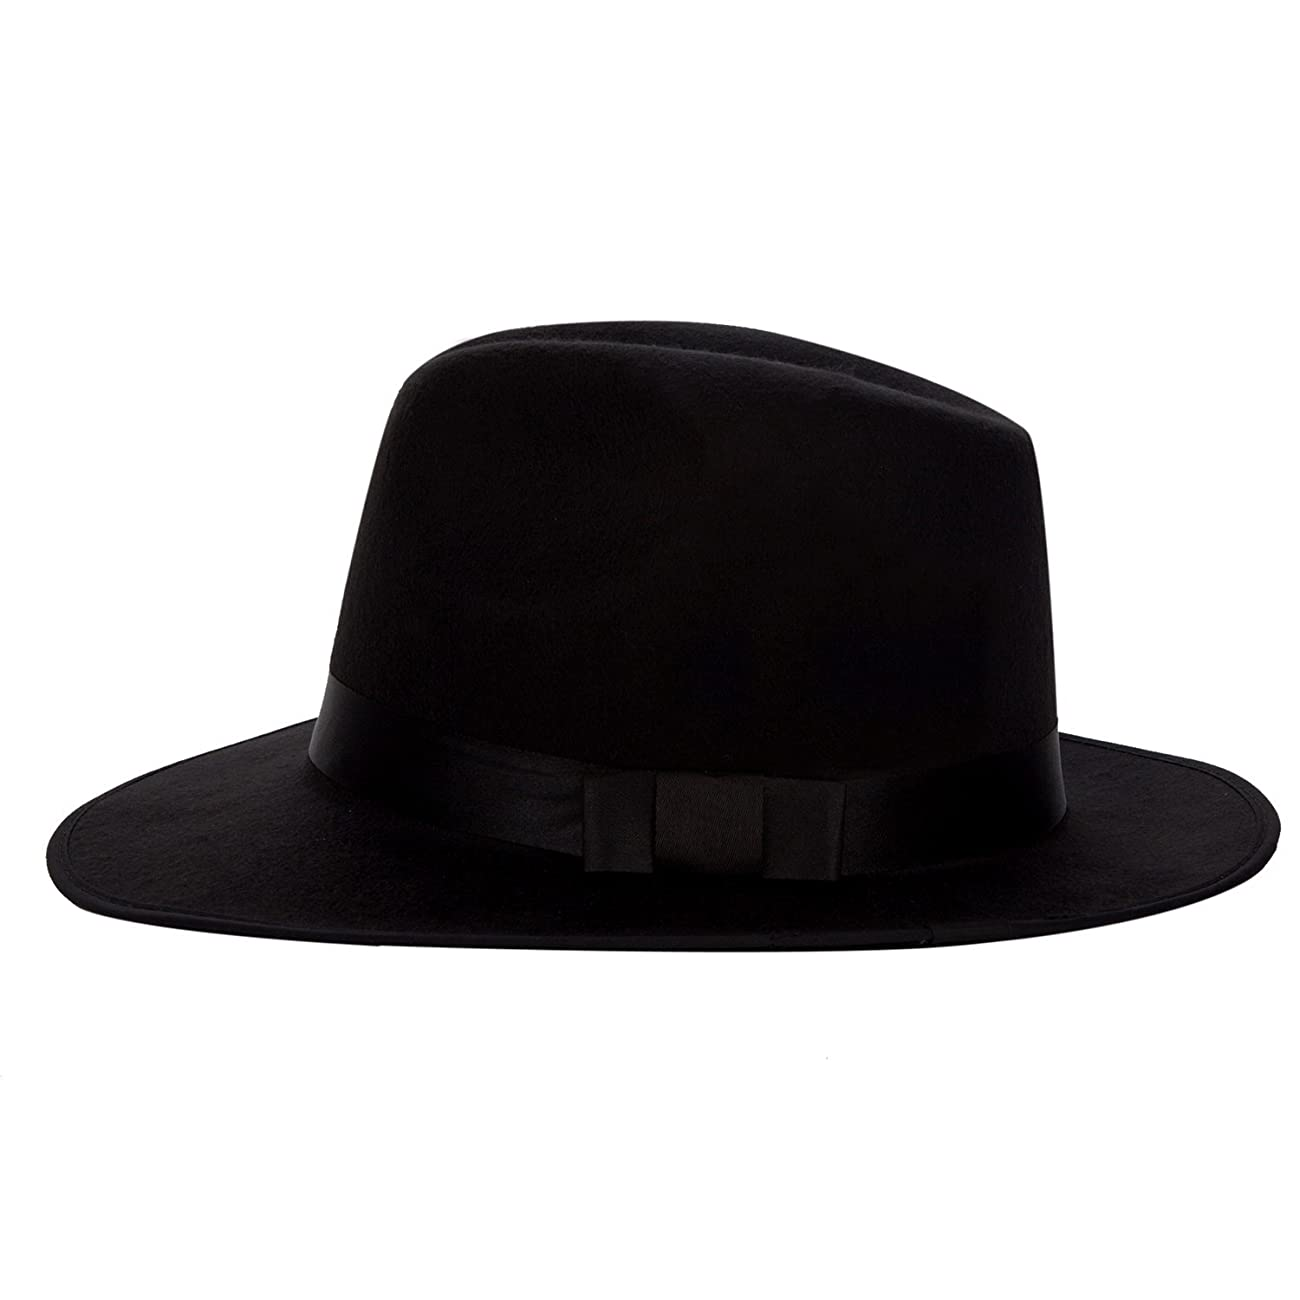 Aerusi Men's Vintage Wide Brim Hard Felt Fedora Panama Hat with Bowknot Black Ribbon 1